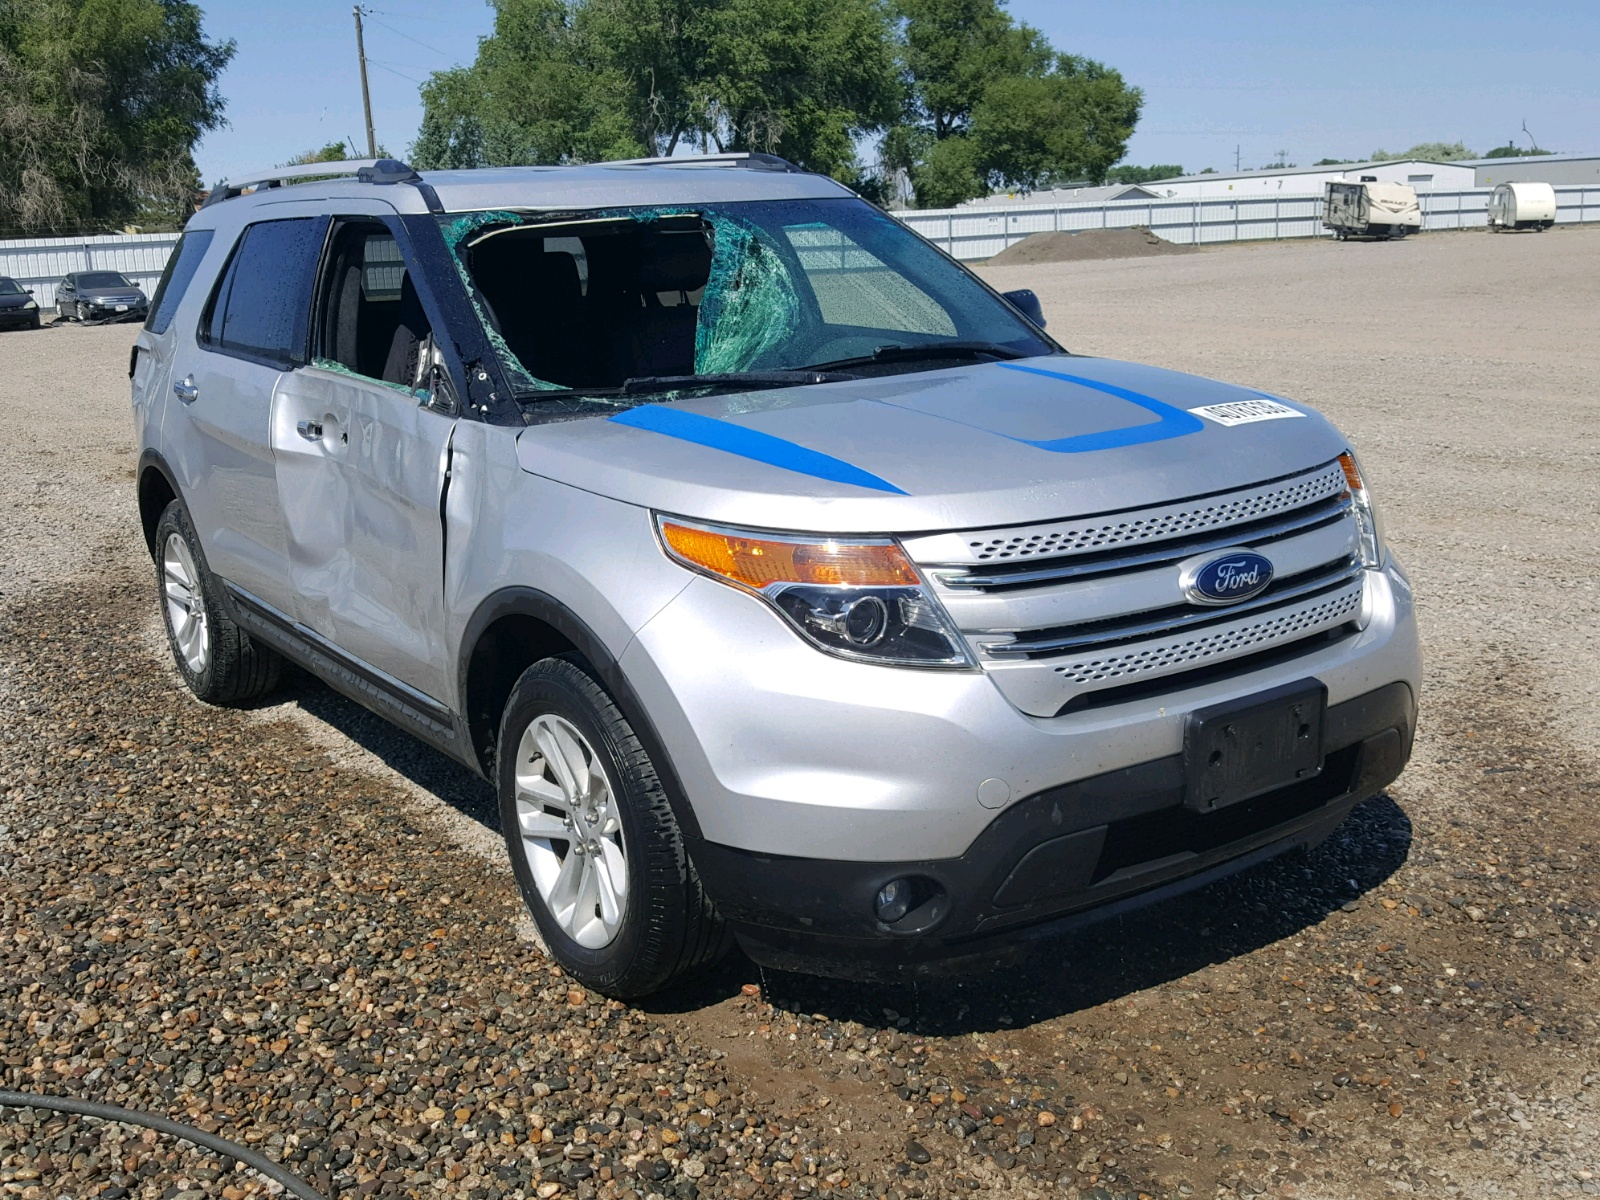 2013 Ford Explorer X for sale at Copart Billings MT Lot